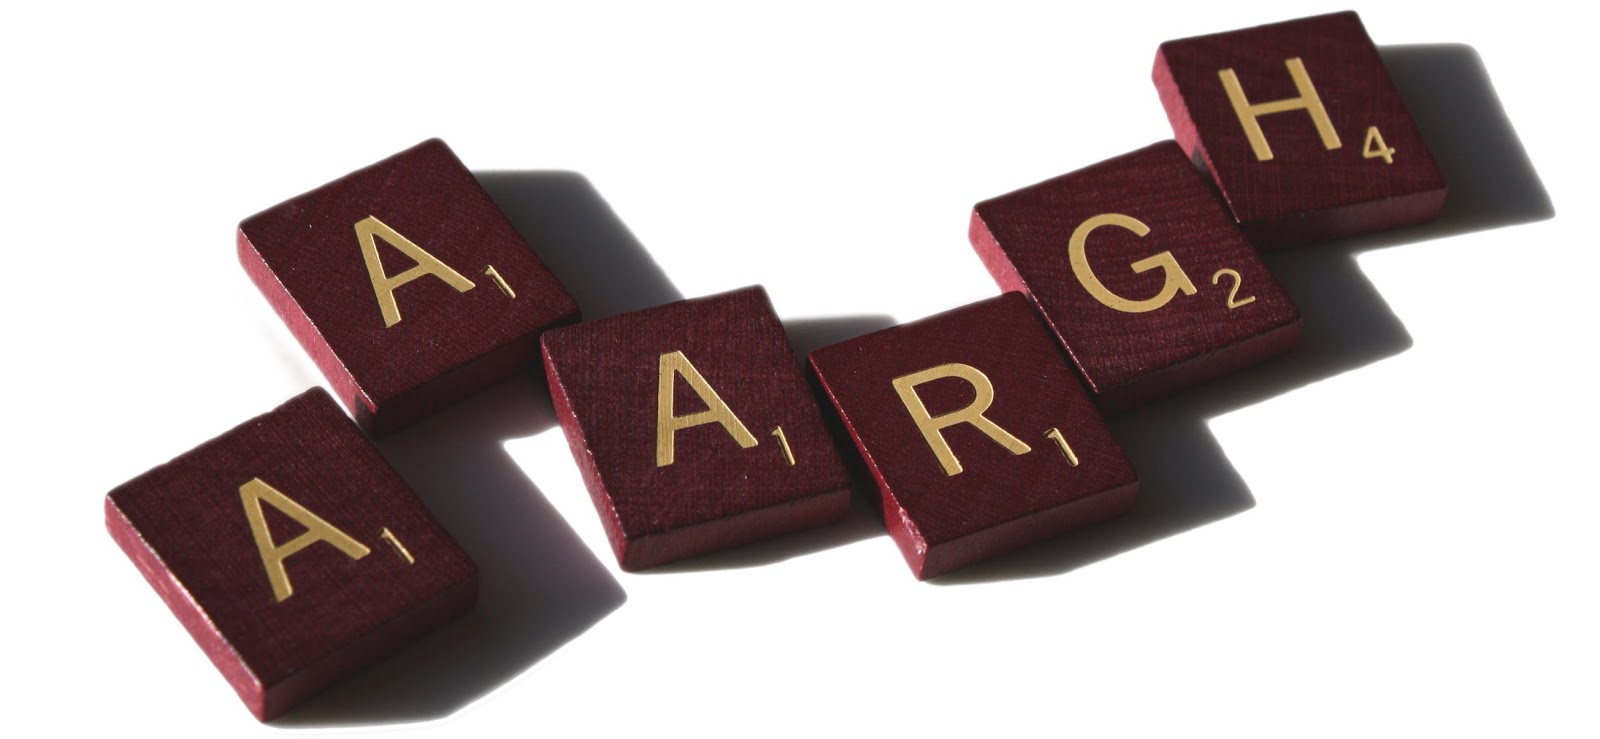 "Scrabble letters spelling out ""Aaargh"""